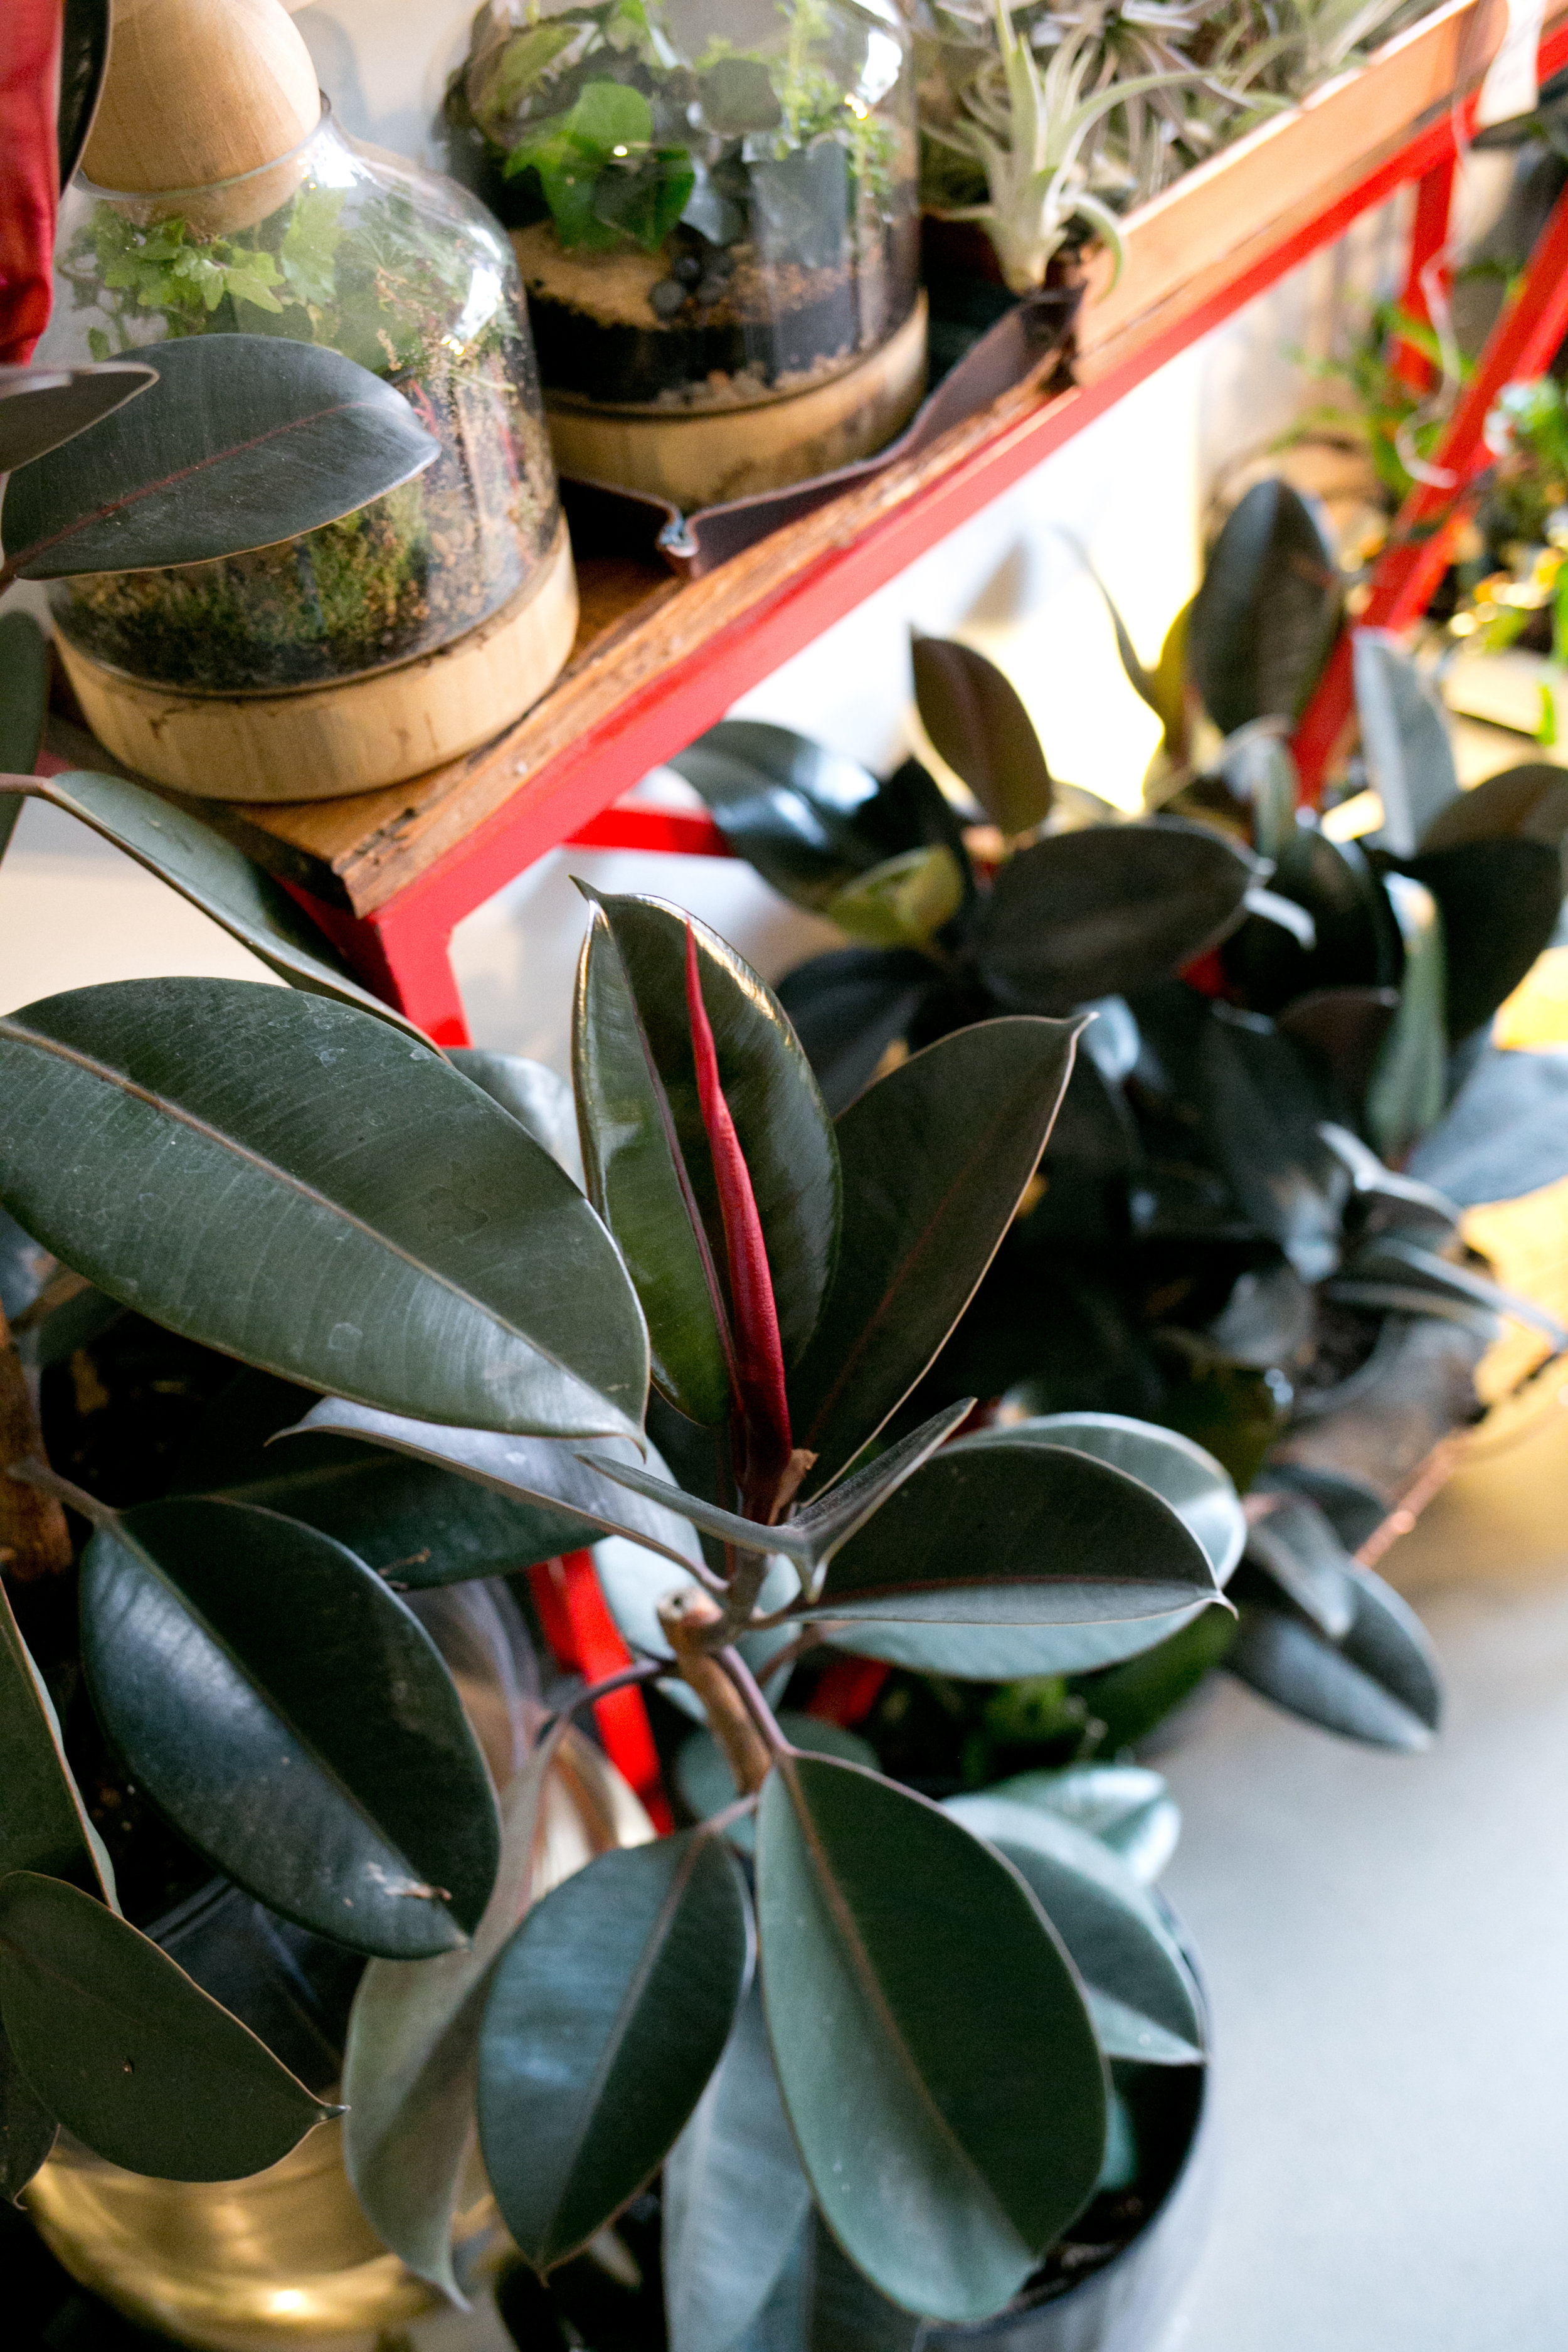 Rubber tree plants  (Ficus elastica)  often need dusting and benefit from frequent polishing.